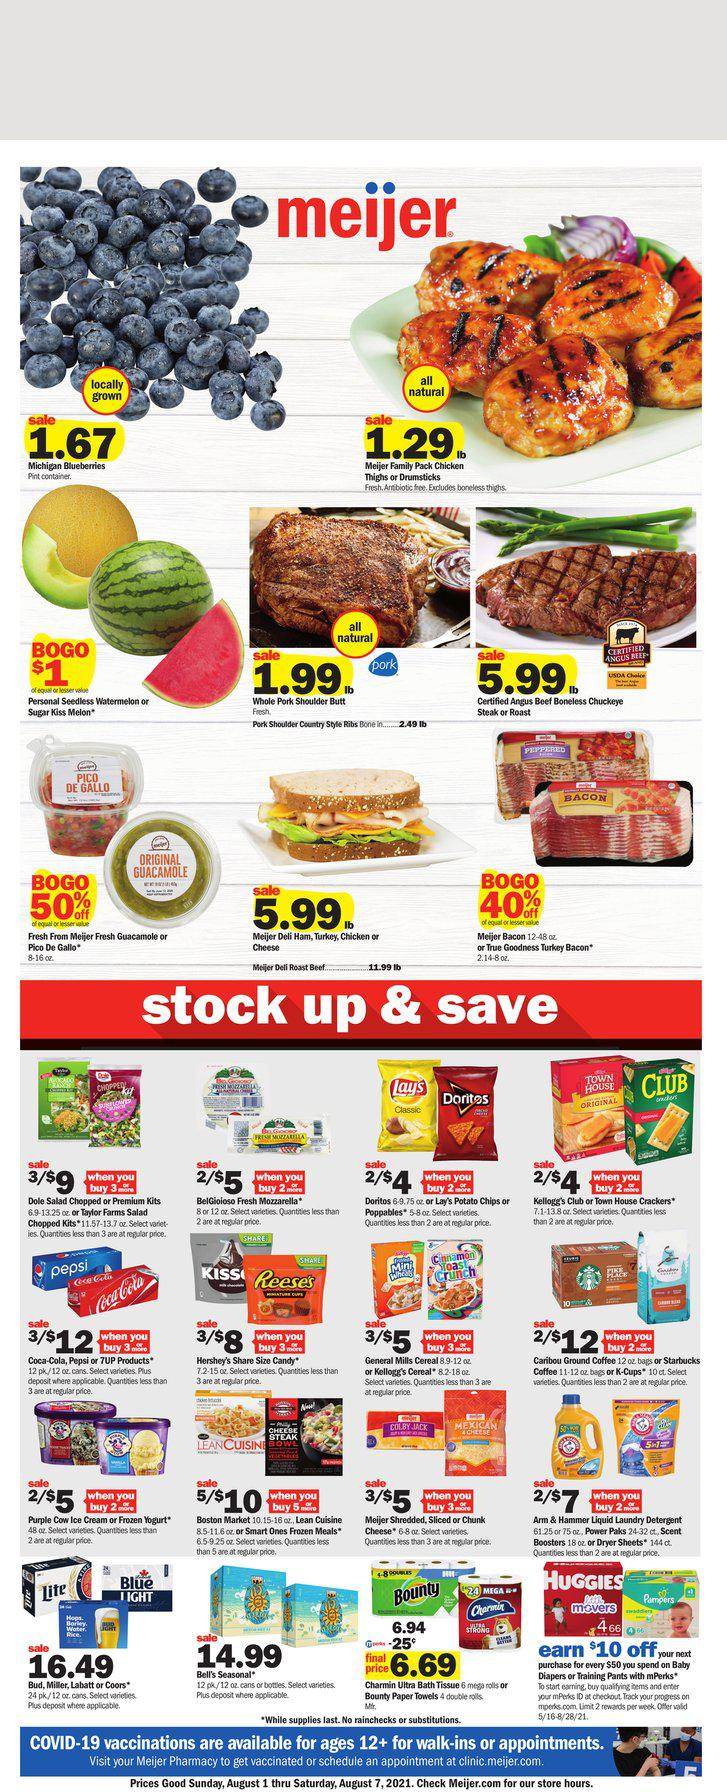 01.08.2021 Meijer ad 1. page